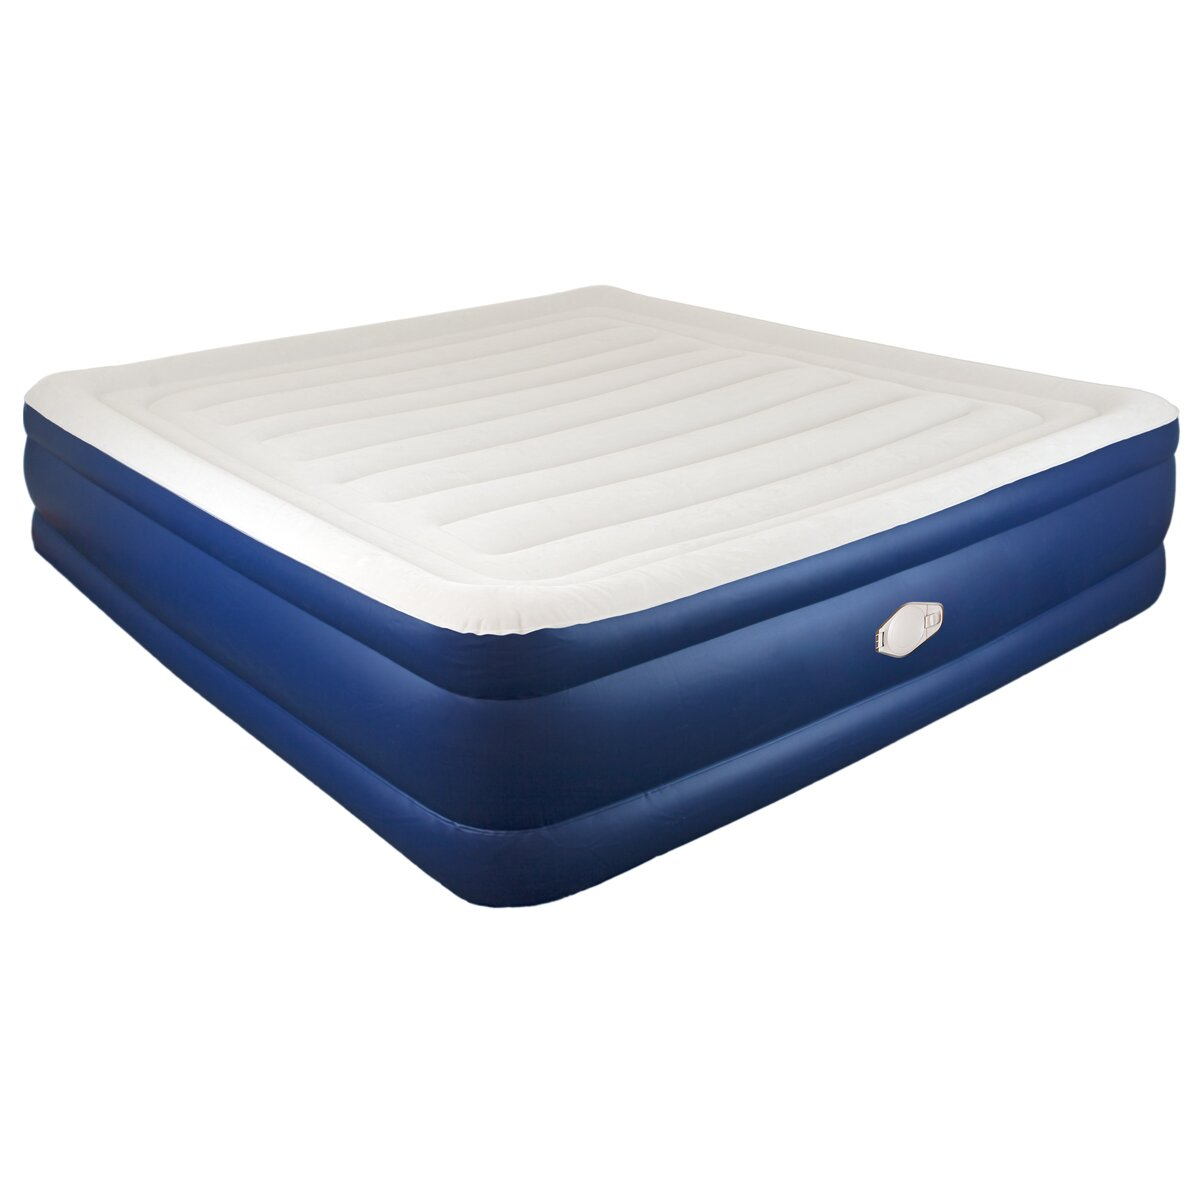 Airtek keystone 20 air mattress reviews wayfair Mattress sale king